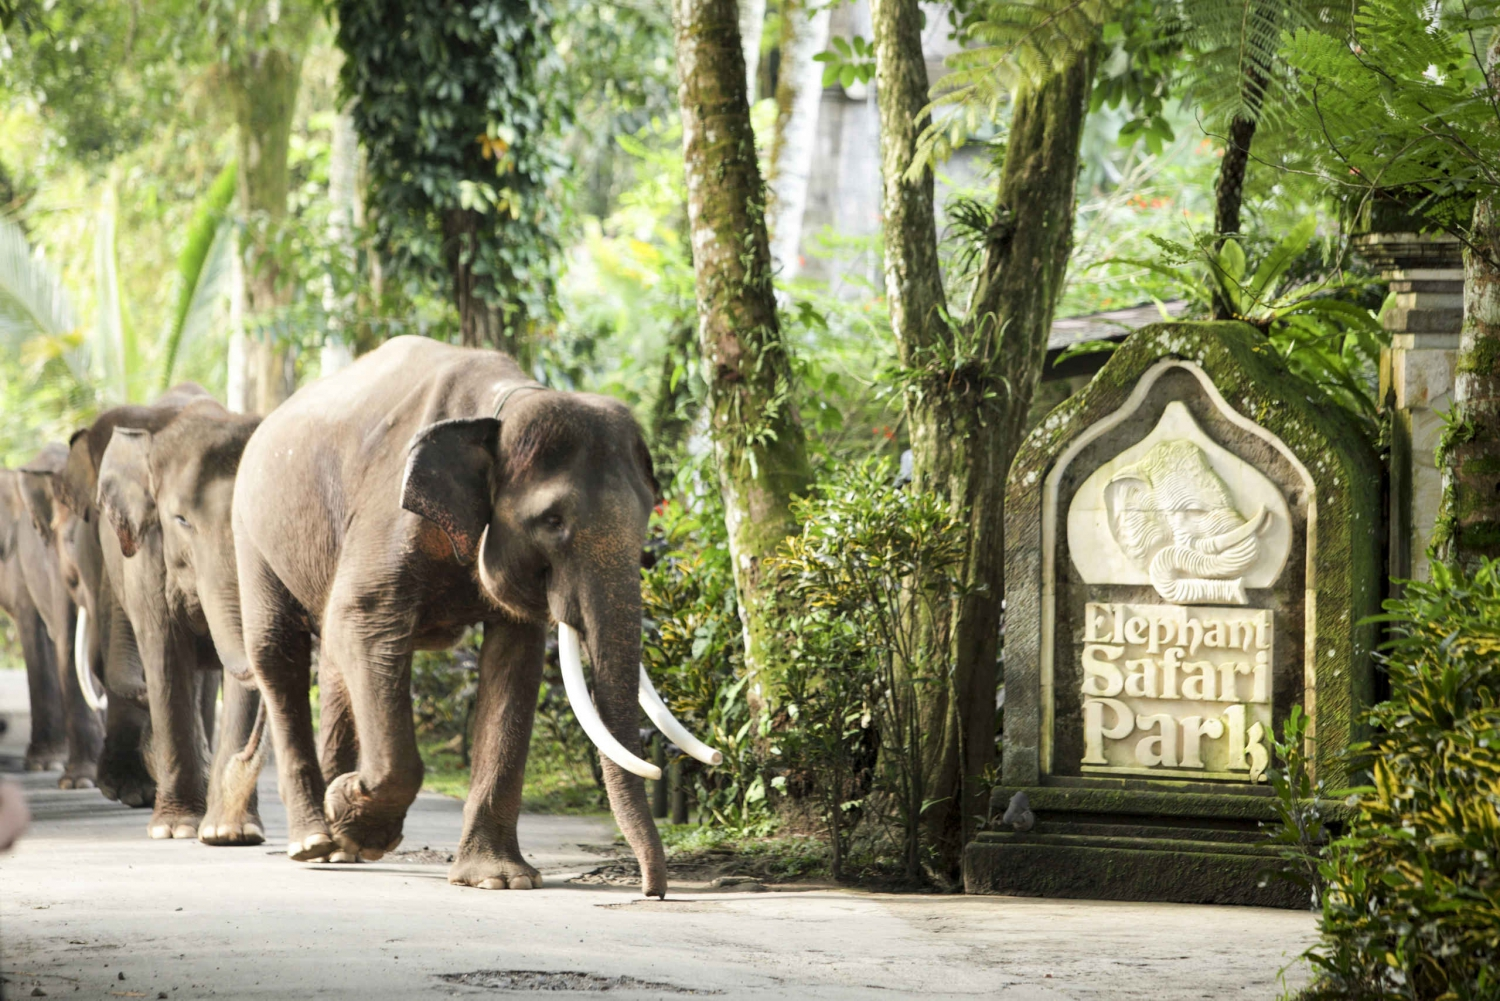 Bali Elephant Safari Park: Instant E-Ticket Entry